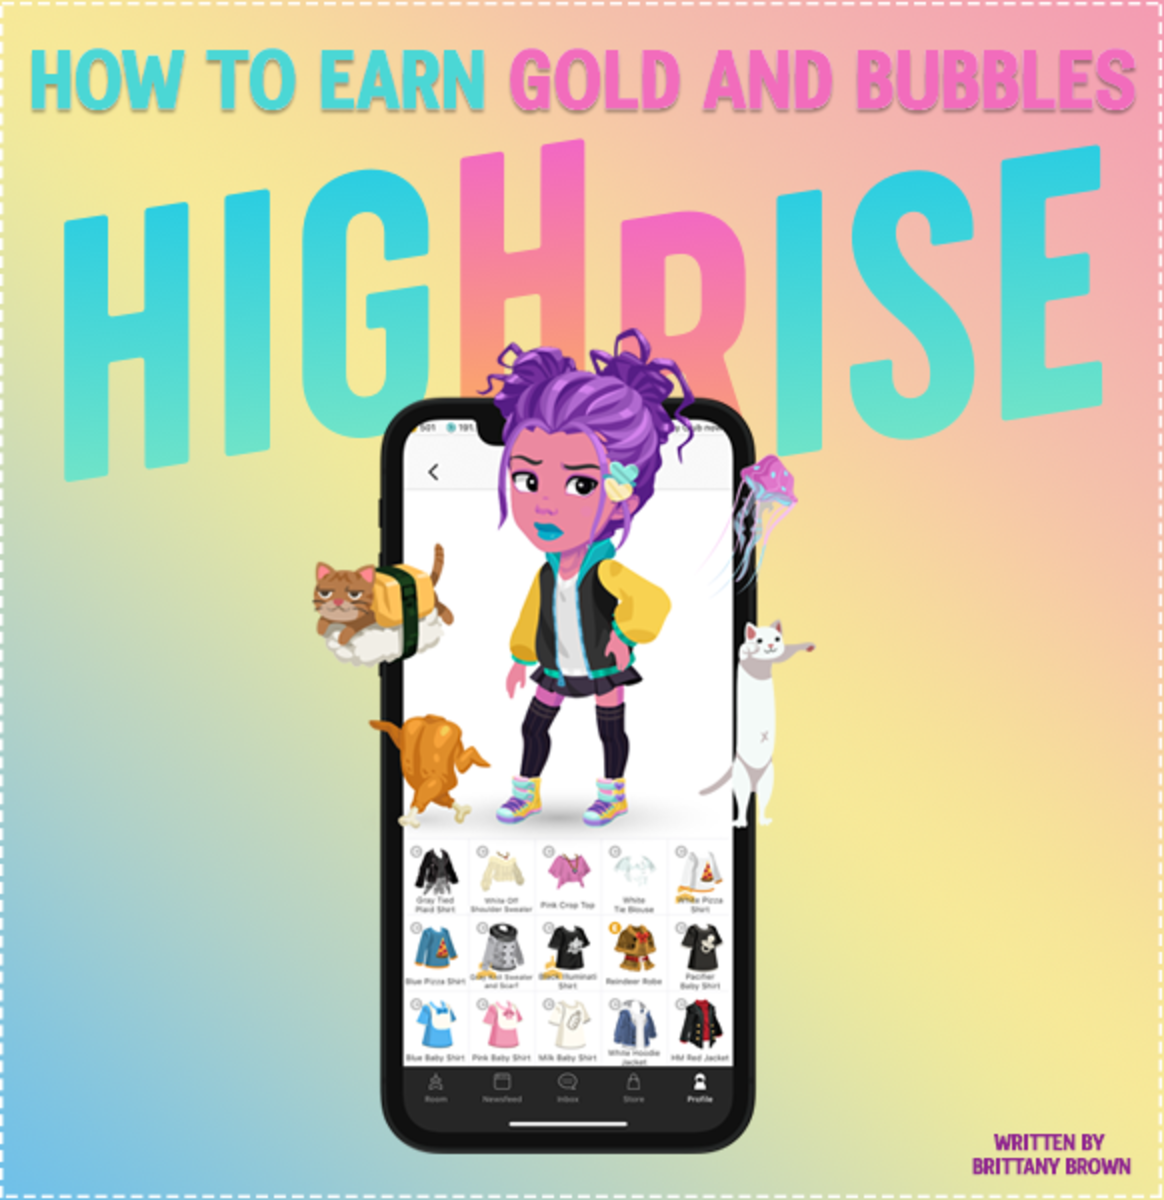 Tips and tricks to earn Gold and Bubbles in Highrise!